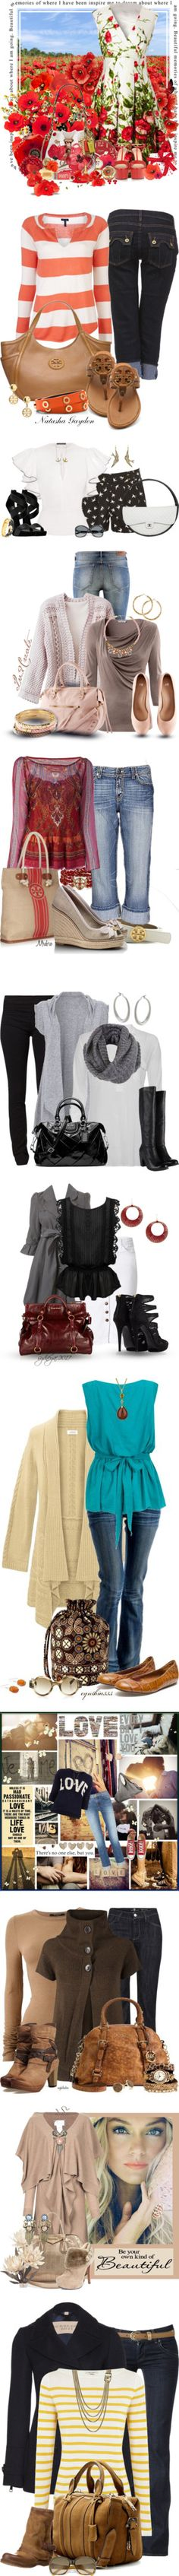 """""""My Dream Closet - II"""" by silverlining07 ❤ liked on Polyvore"""